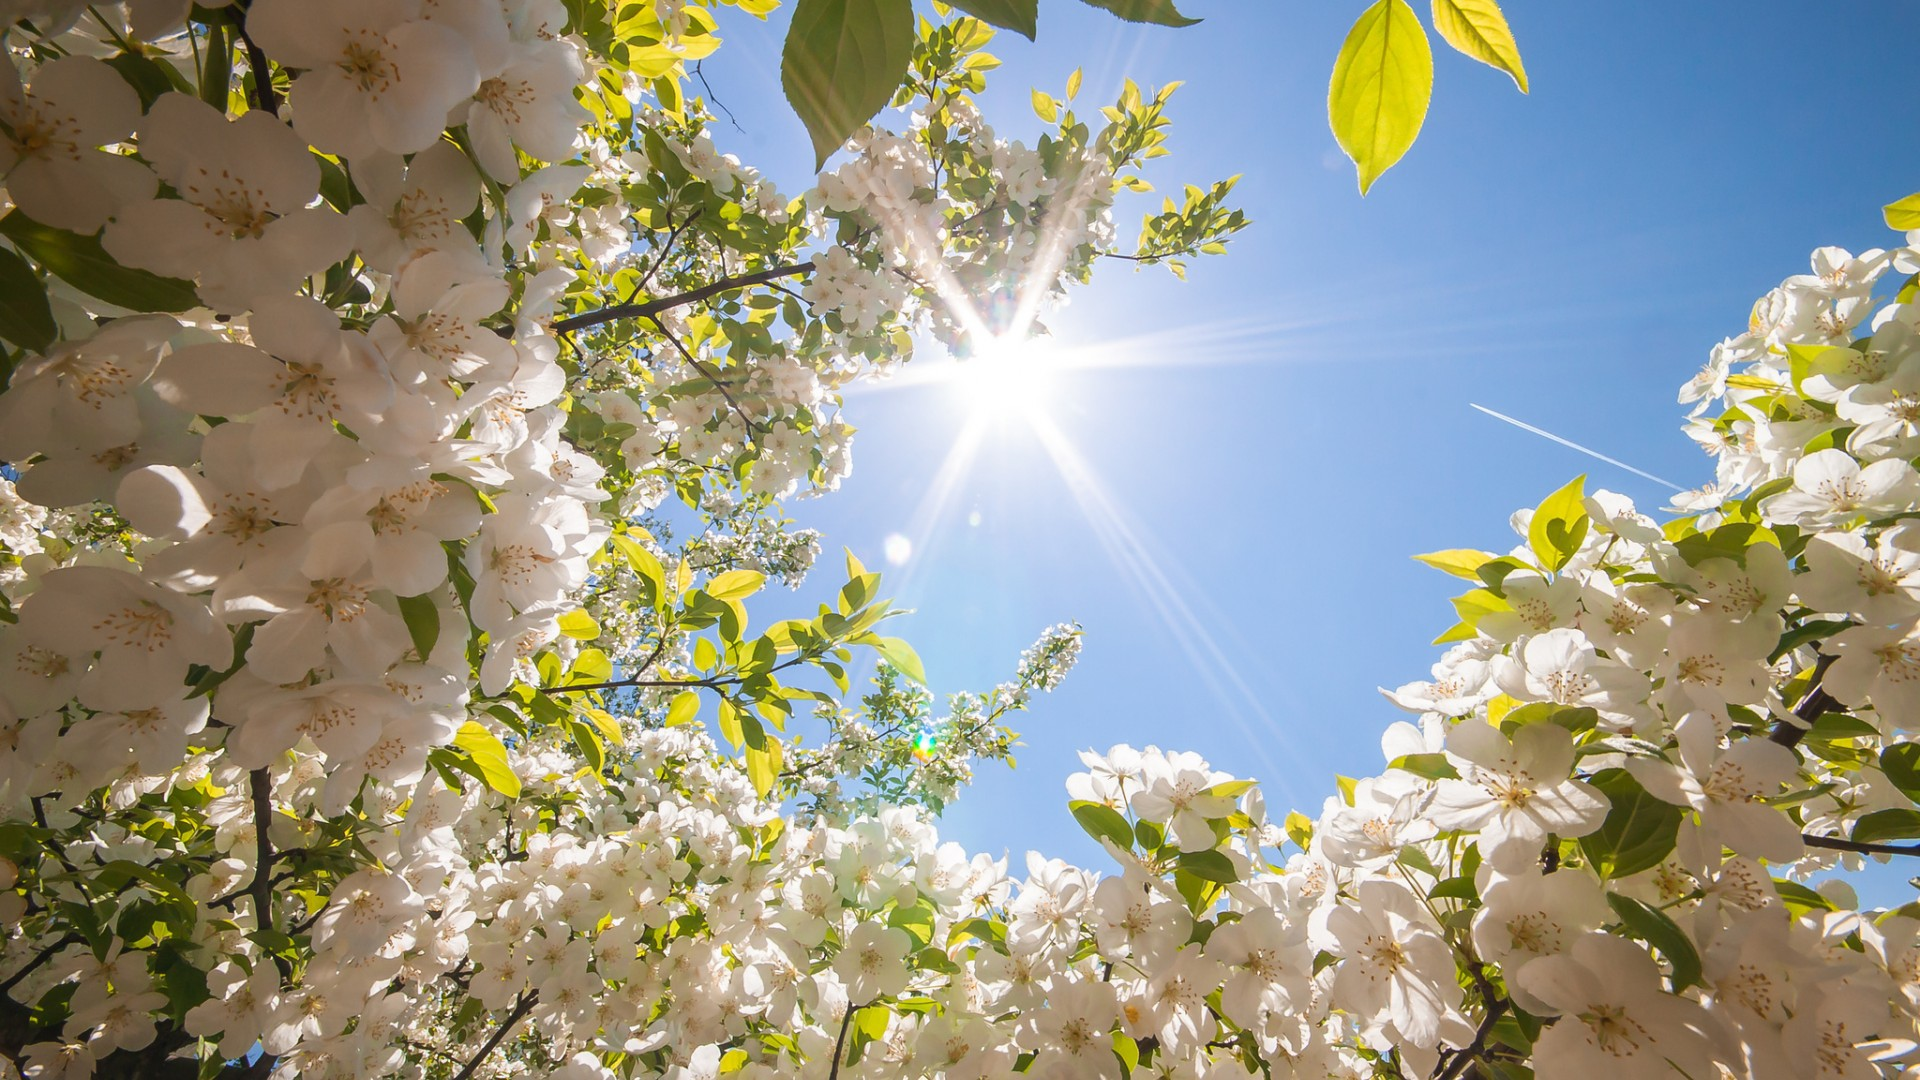 Spring wallpapers images photos pictures backgrounds - Free computer backgrounds for spring ...